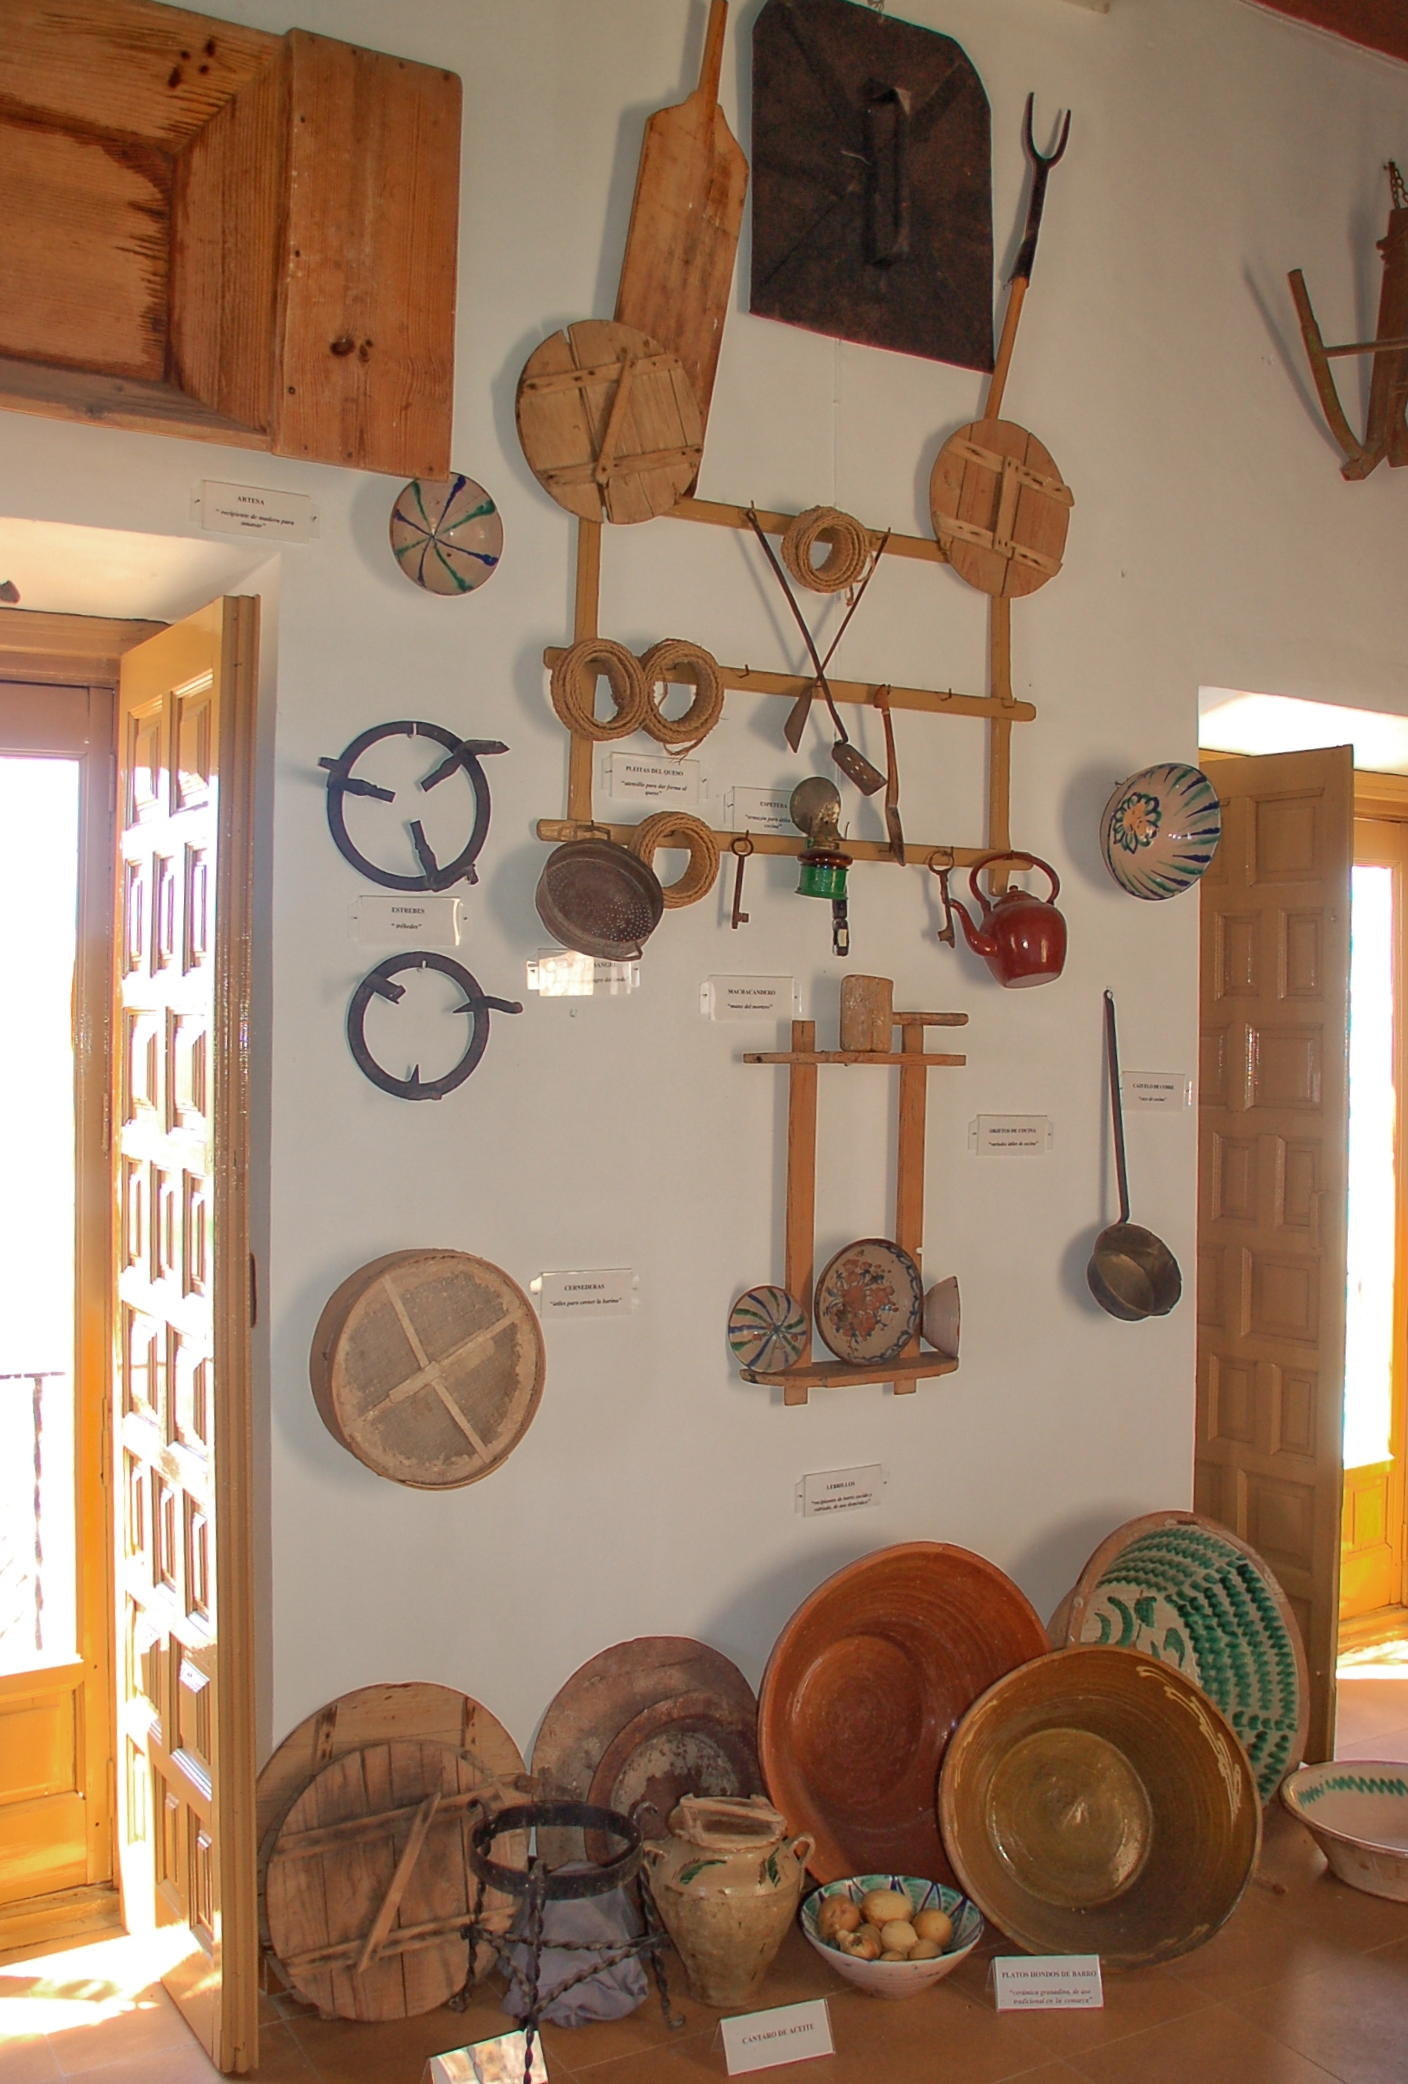 Museum of Implements of Tillage and Popular Traditions